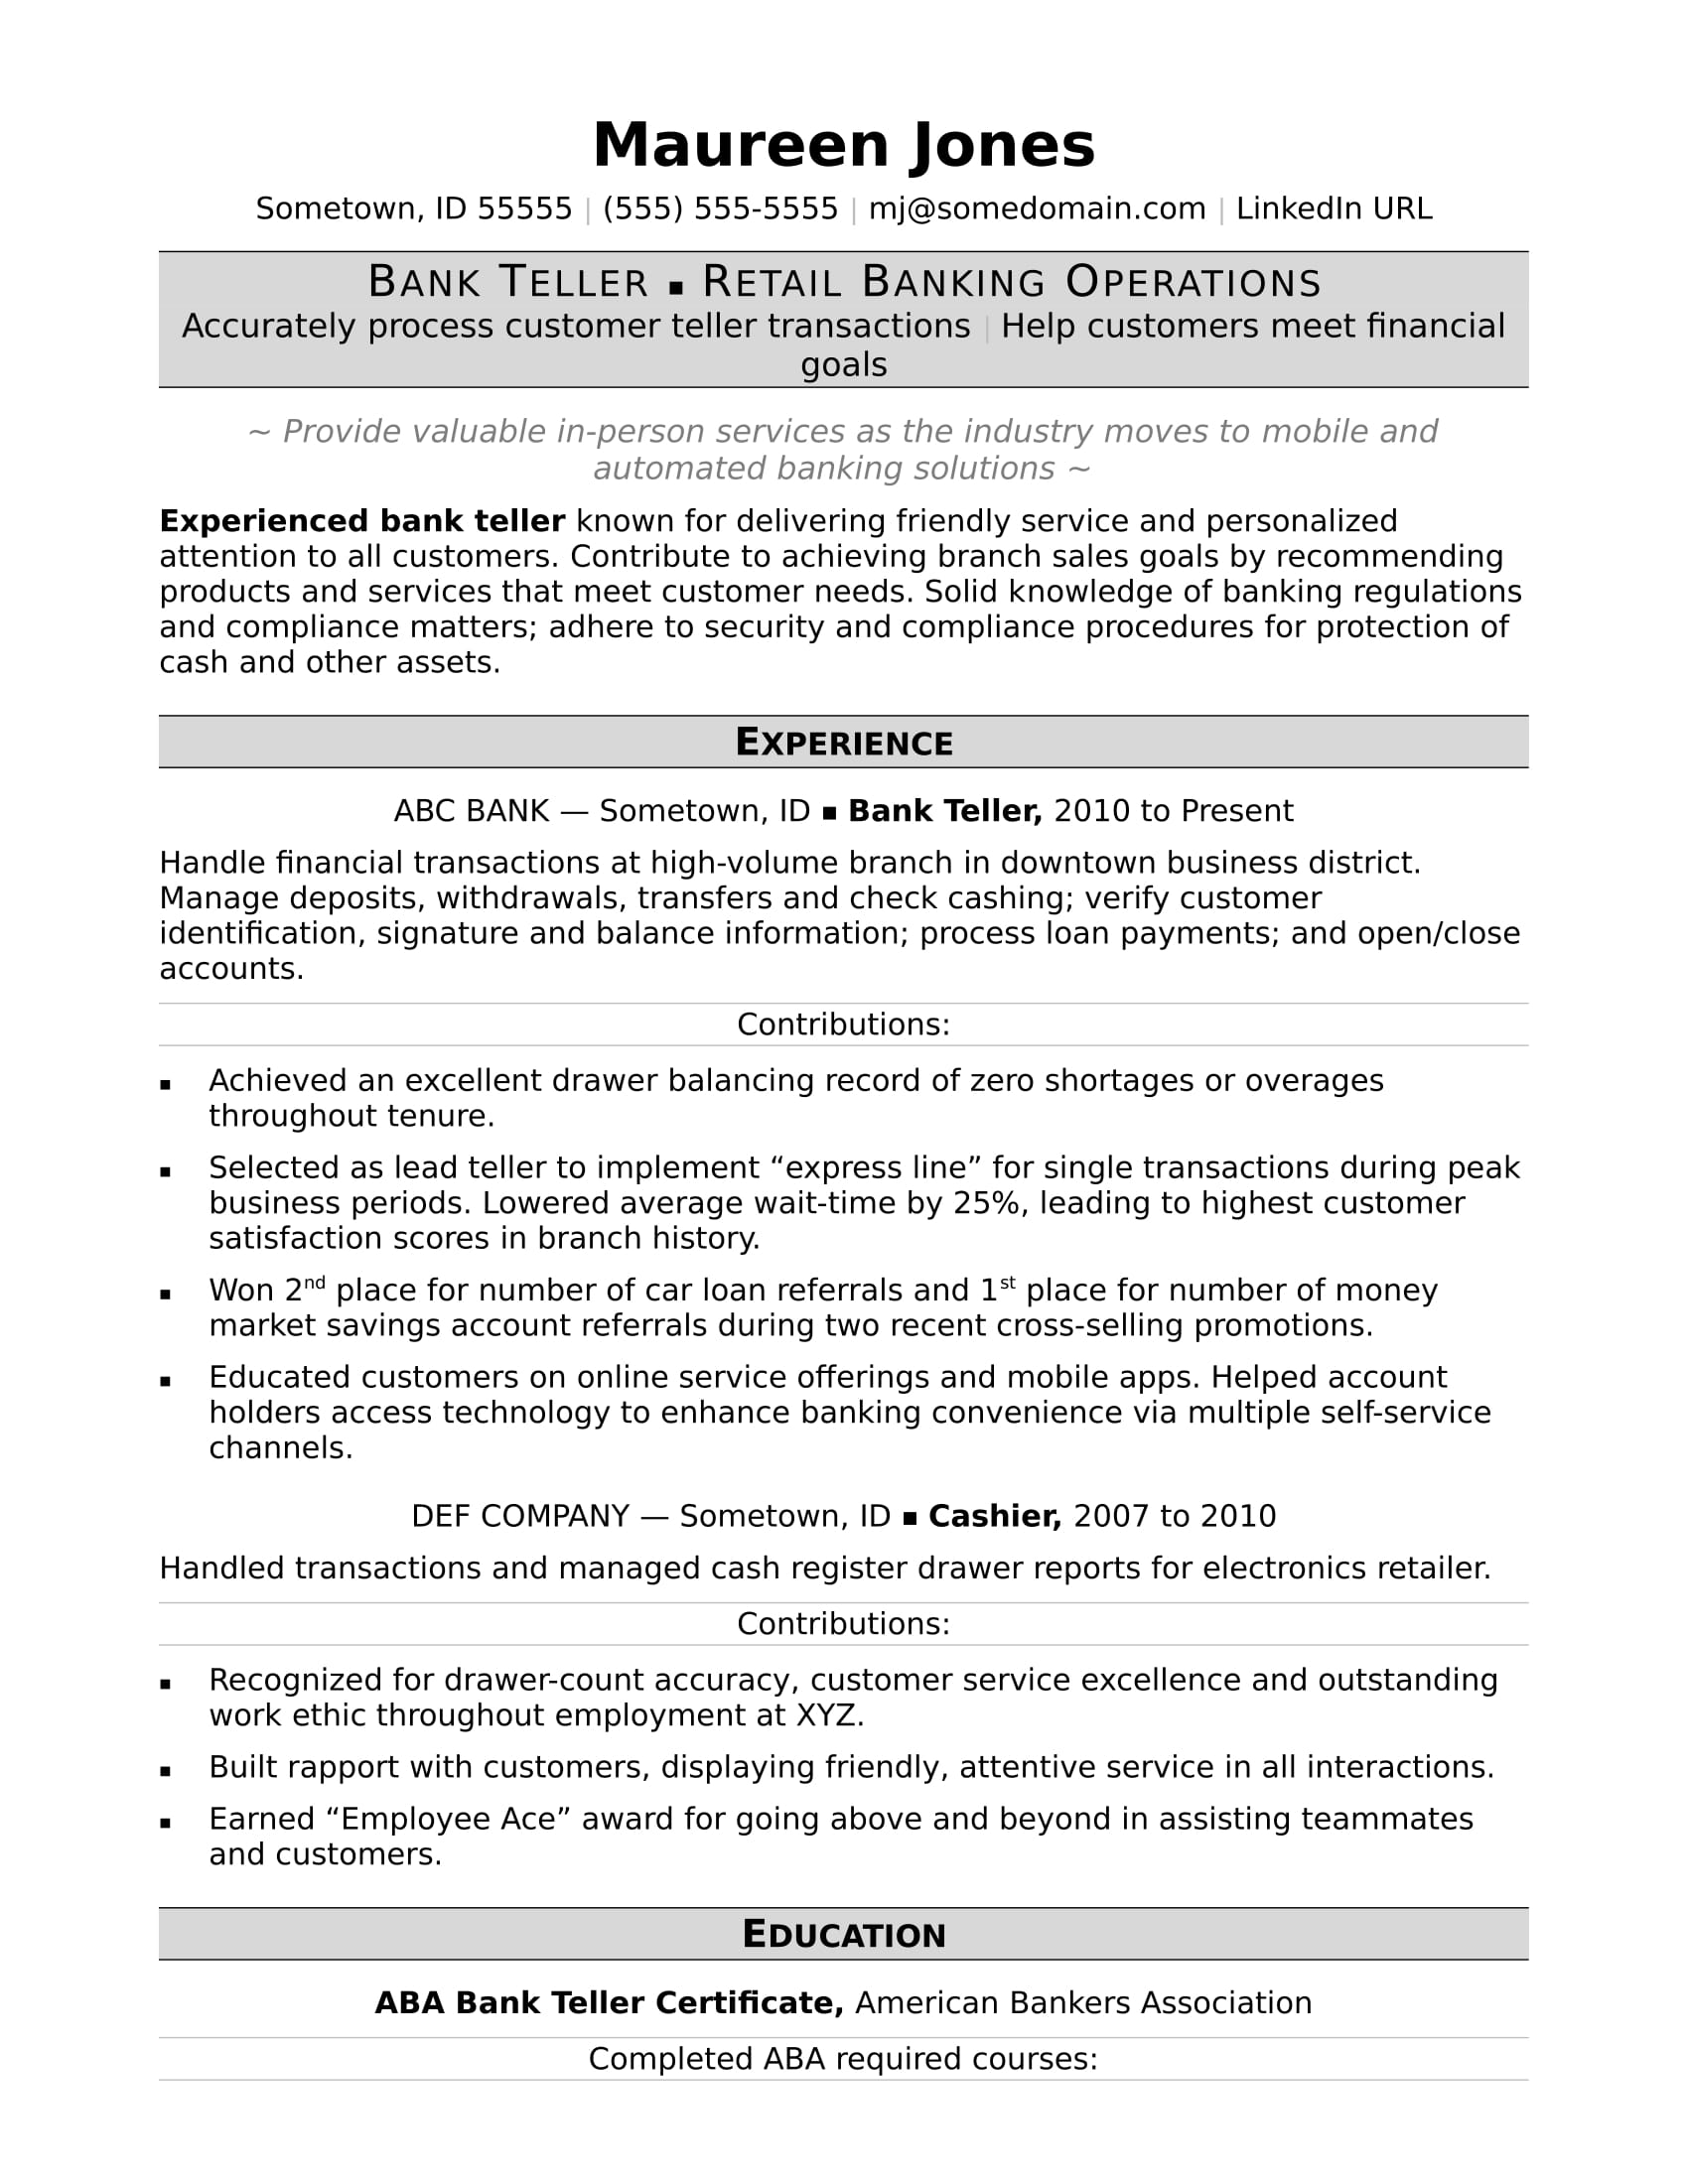 bank teller resume sample - Bank Teller Resume Examples